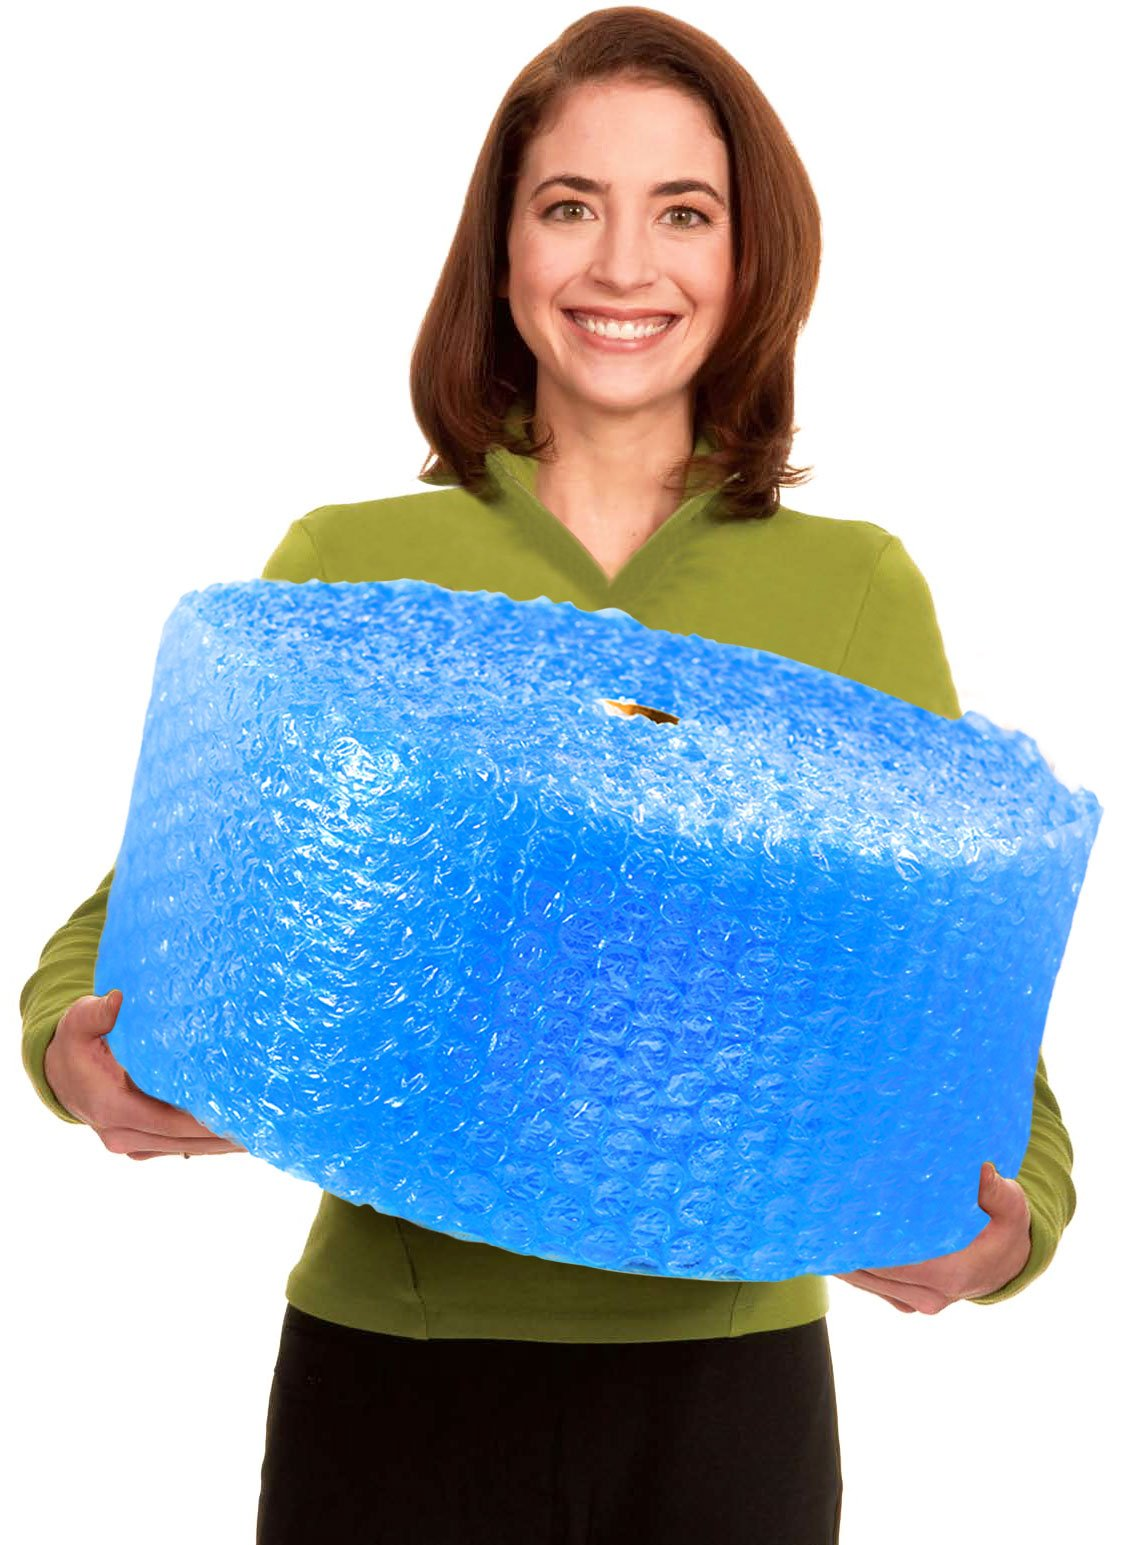 EcoBox Bubble Cushion Wrap 12-Inch Wide x 125-Feet Long, with 1/2-Inch Large Bubbles, by EcoBox